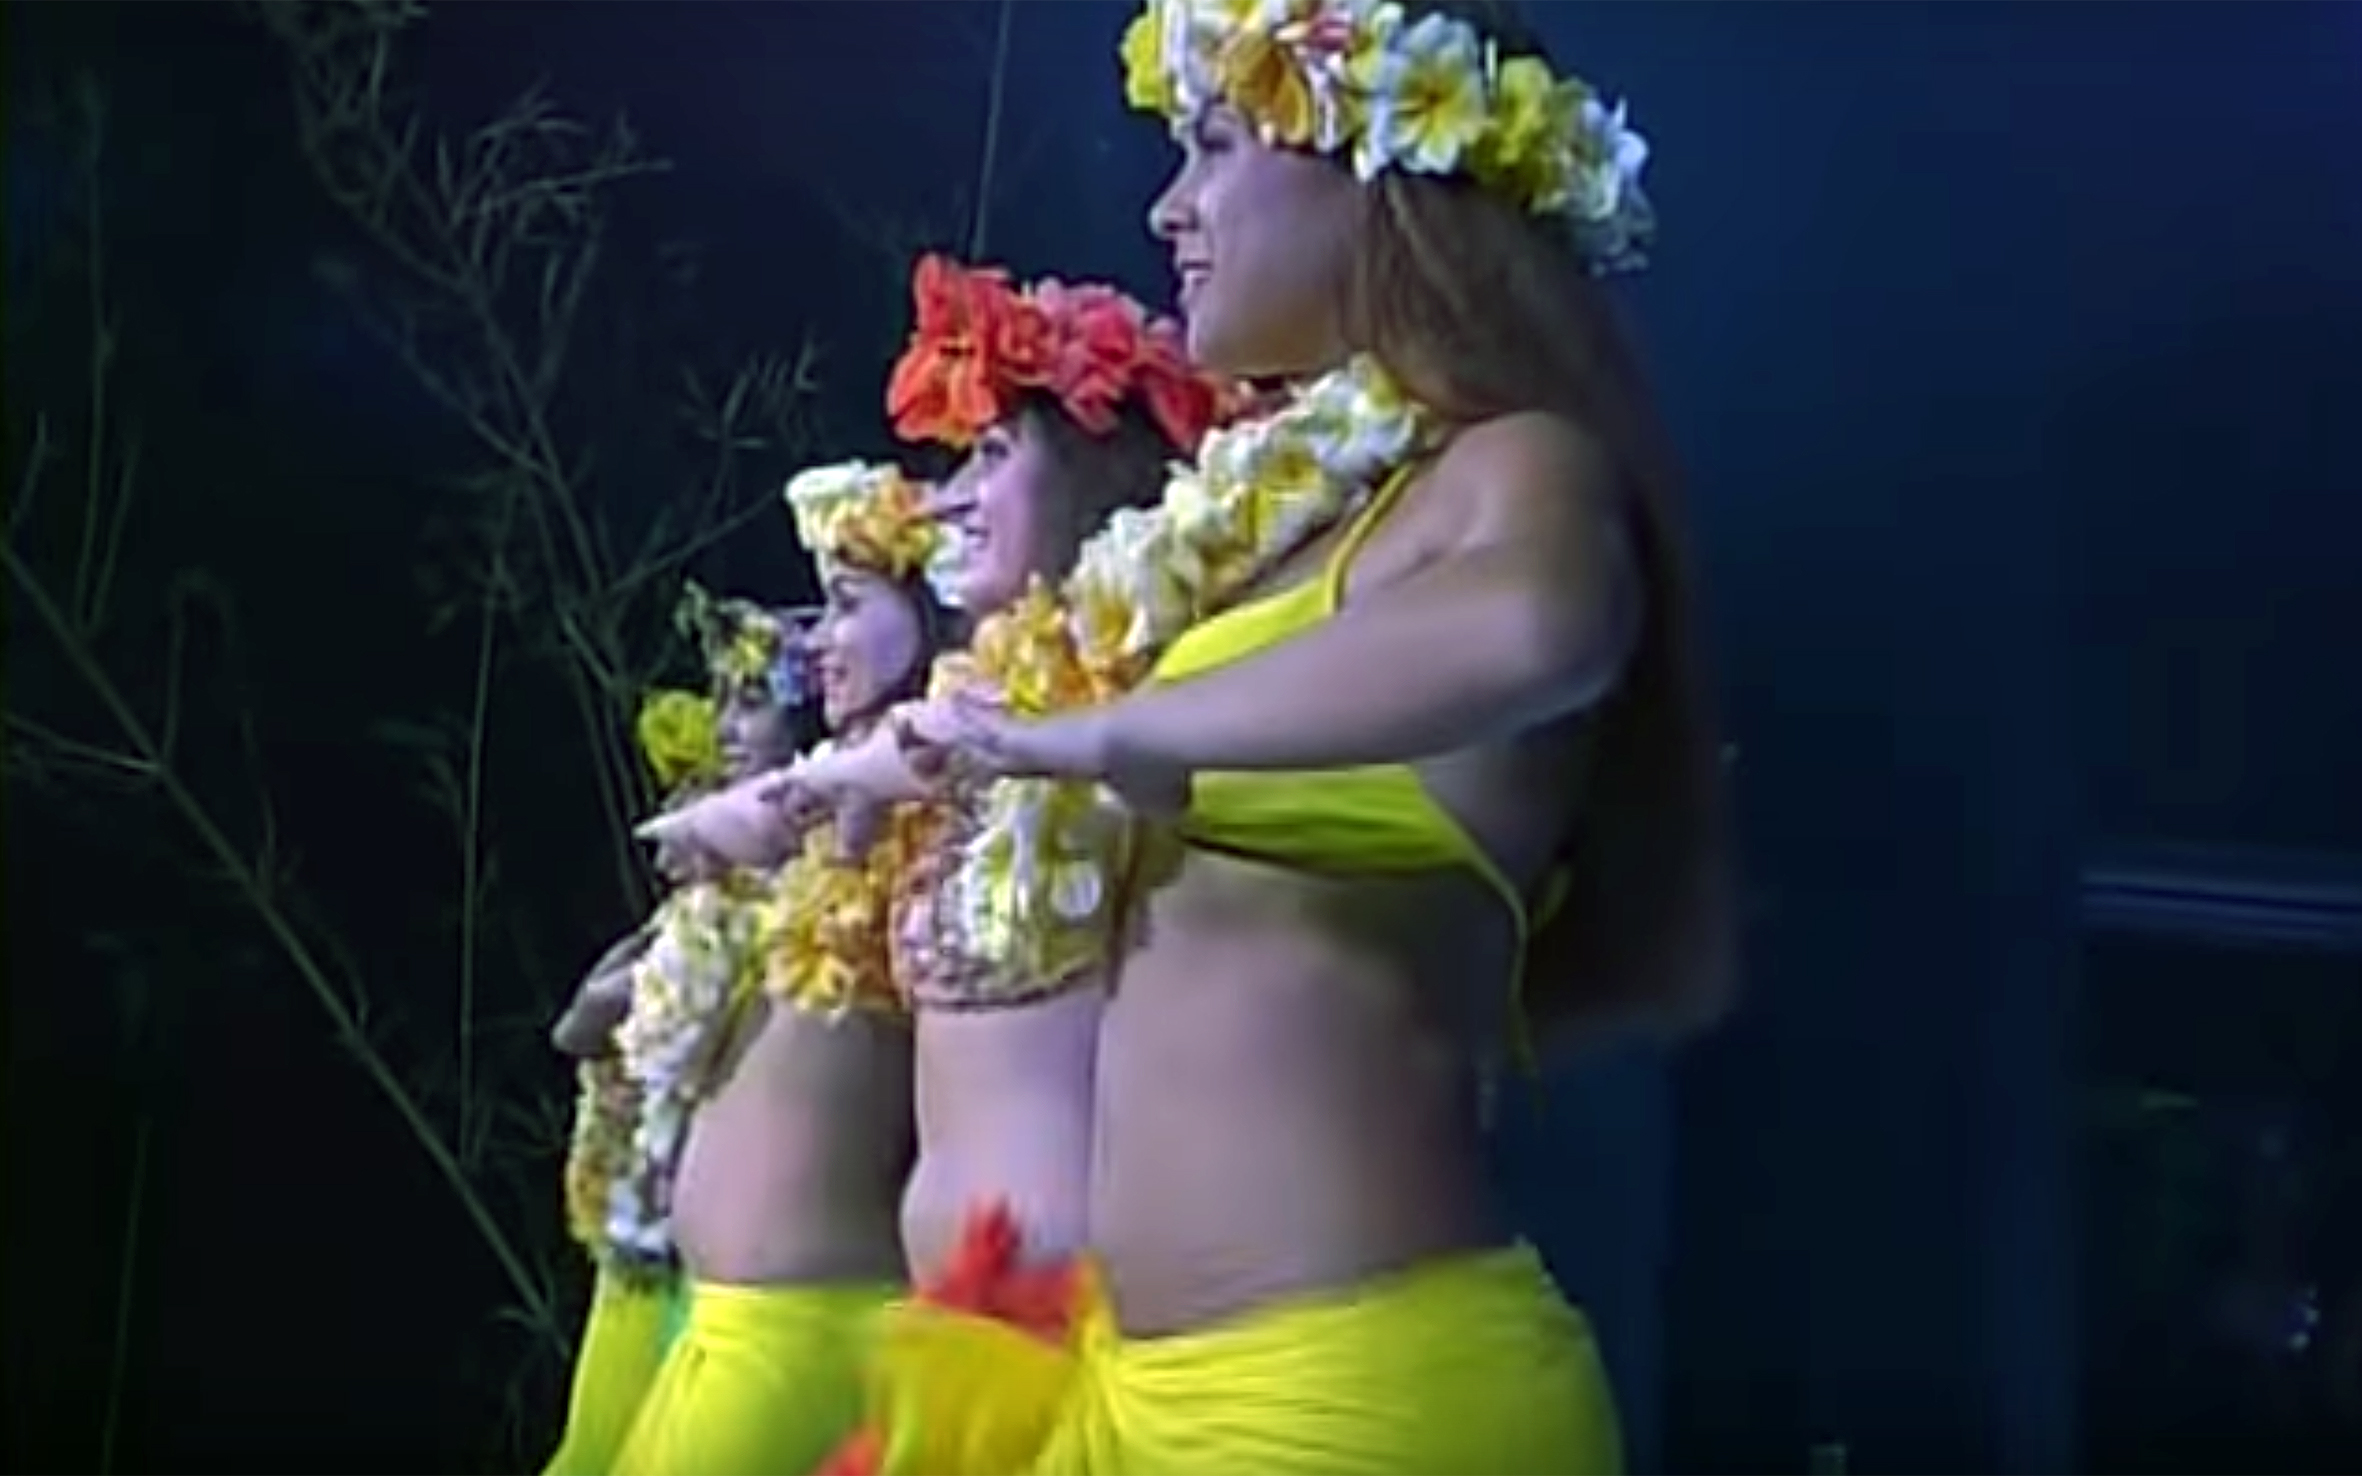 """861.TAMURE / Tahiti - TAMURE is the oldest dance from Tahiti. When Europeans colonists arrived in Tahiti in mid 19th century, they prohibited this dance because of its erotic, almost satanic aspect. Half a century later, French protectorate allowed to perform it again. Its movements are based on warrior dance and daily life gestures. Usually danced as a group of boys and girls, all dressed in more (the Tahitian grass skirt, not made of grass but of the fibres from the bark of the """"pūrau"""" (hibiscus). Boys shake their knees and the girls shake their hips. The girls are largely standing still, the boys move around their partner, either facing her in front or hiding behind her back. The tempo of the music is continuously increasing to the point where only the most experienced and fittest dancers can keep their shakings up."""